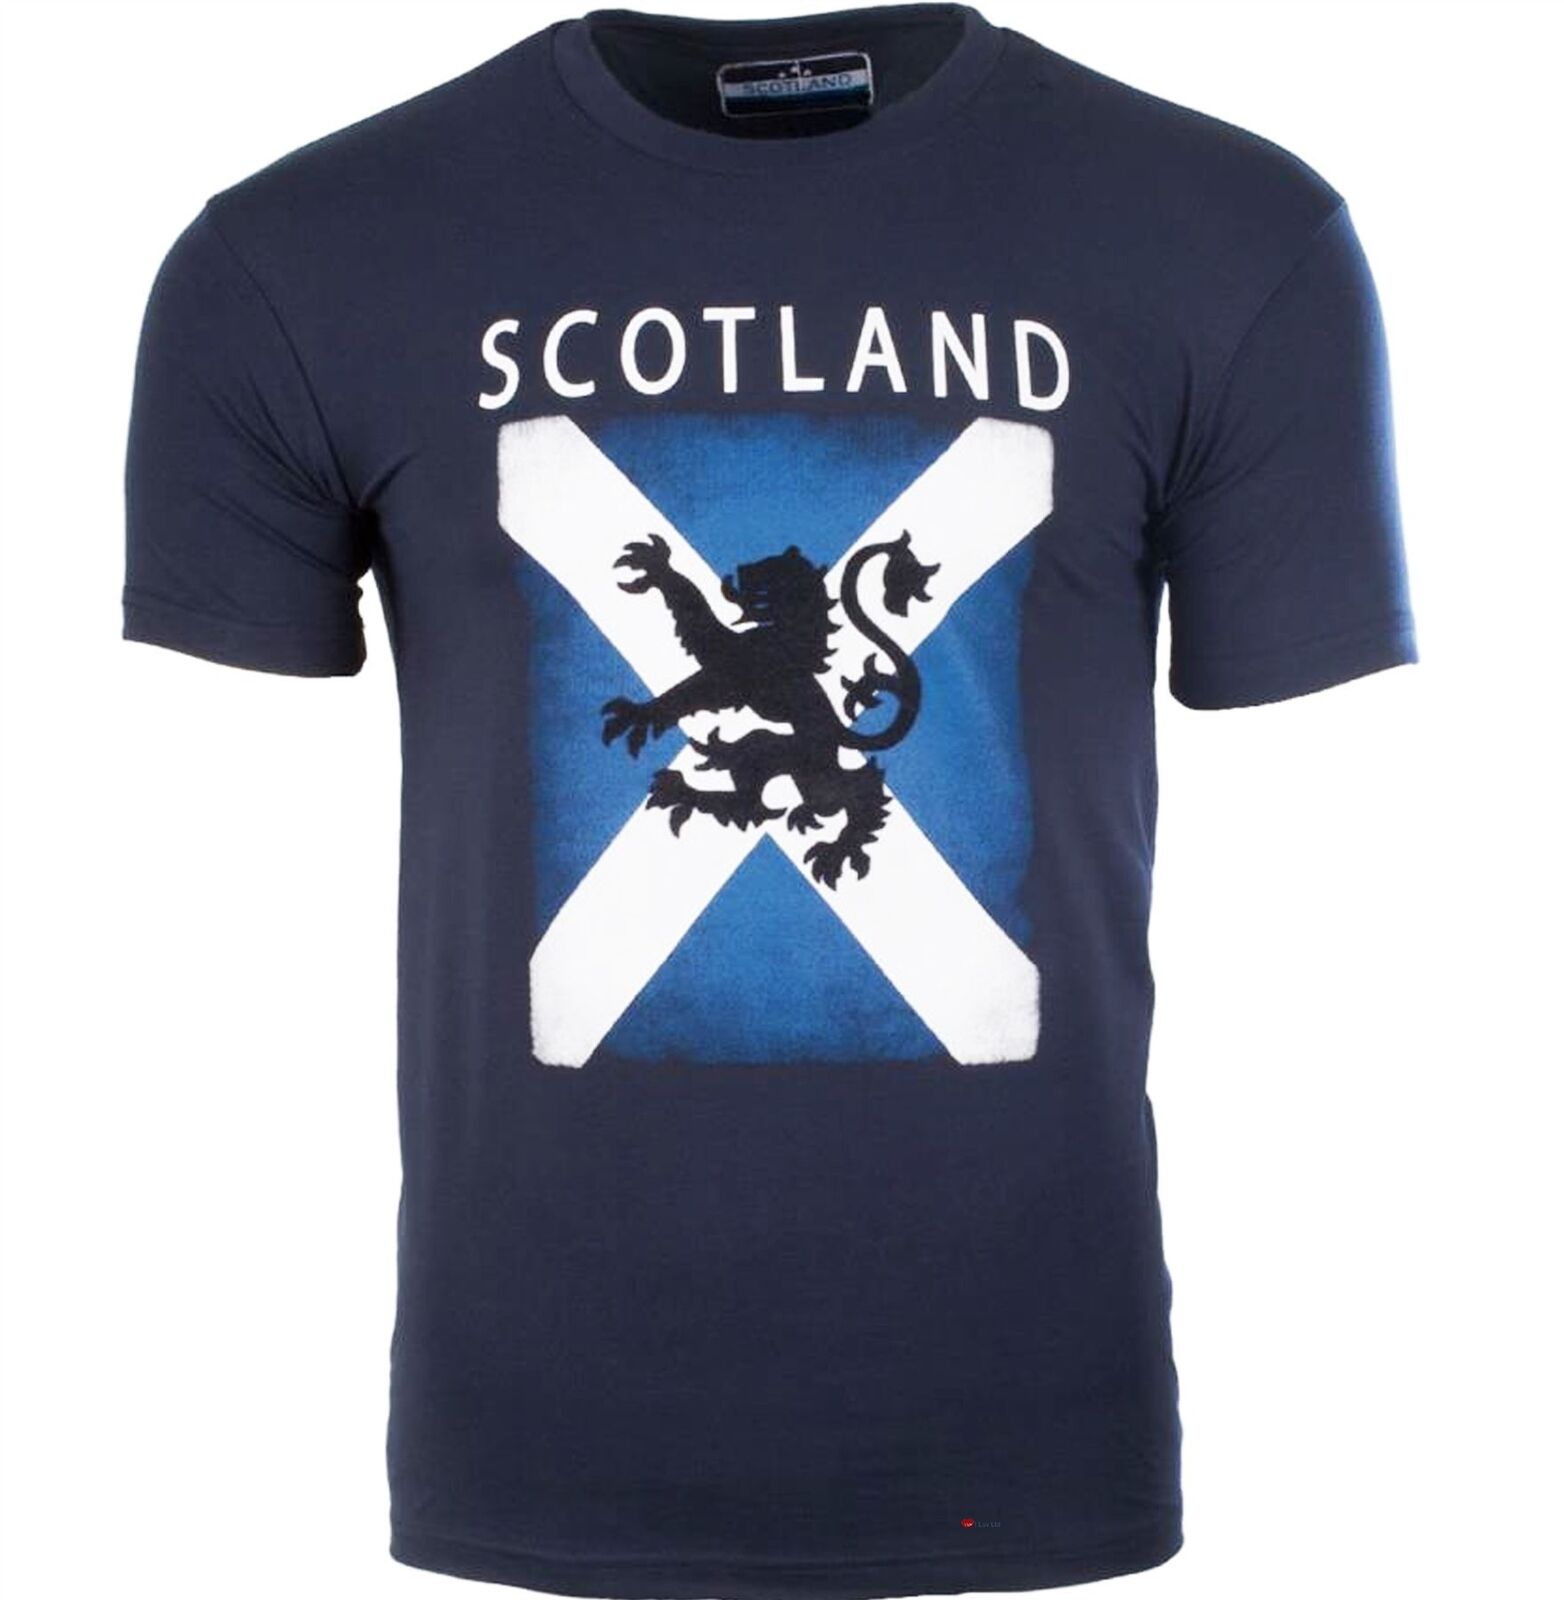 Gents Scotland Design T-Shirt With Lion Rampant Design In Navy Size Small